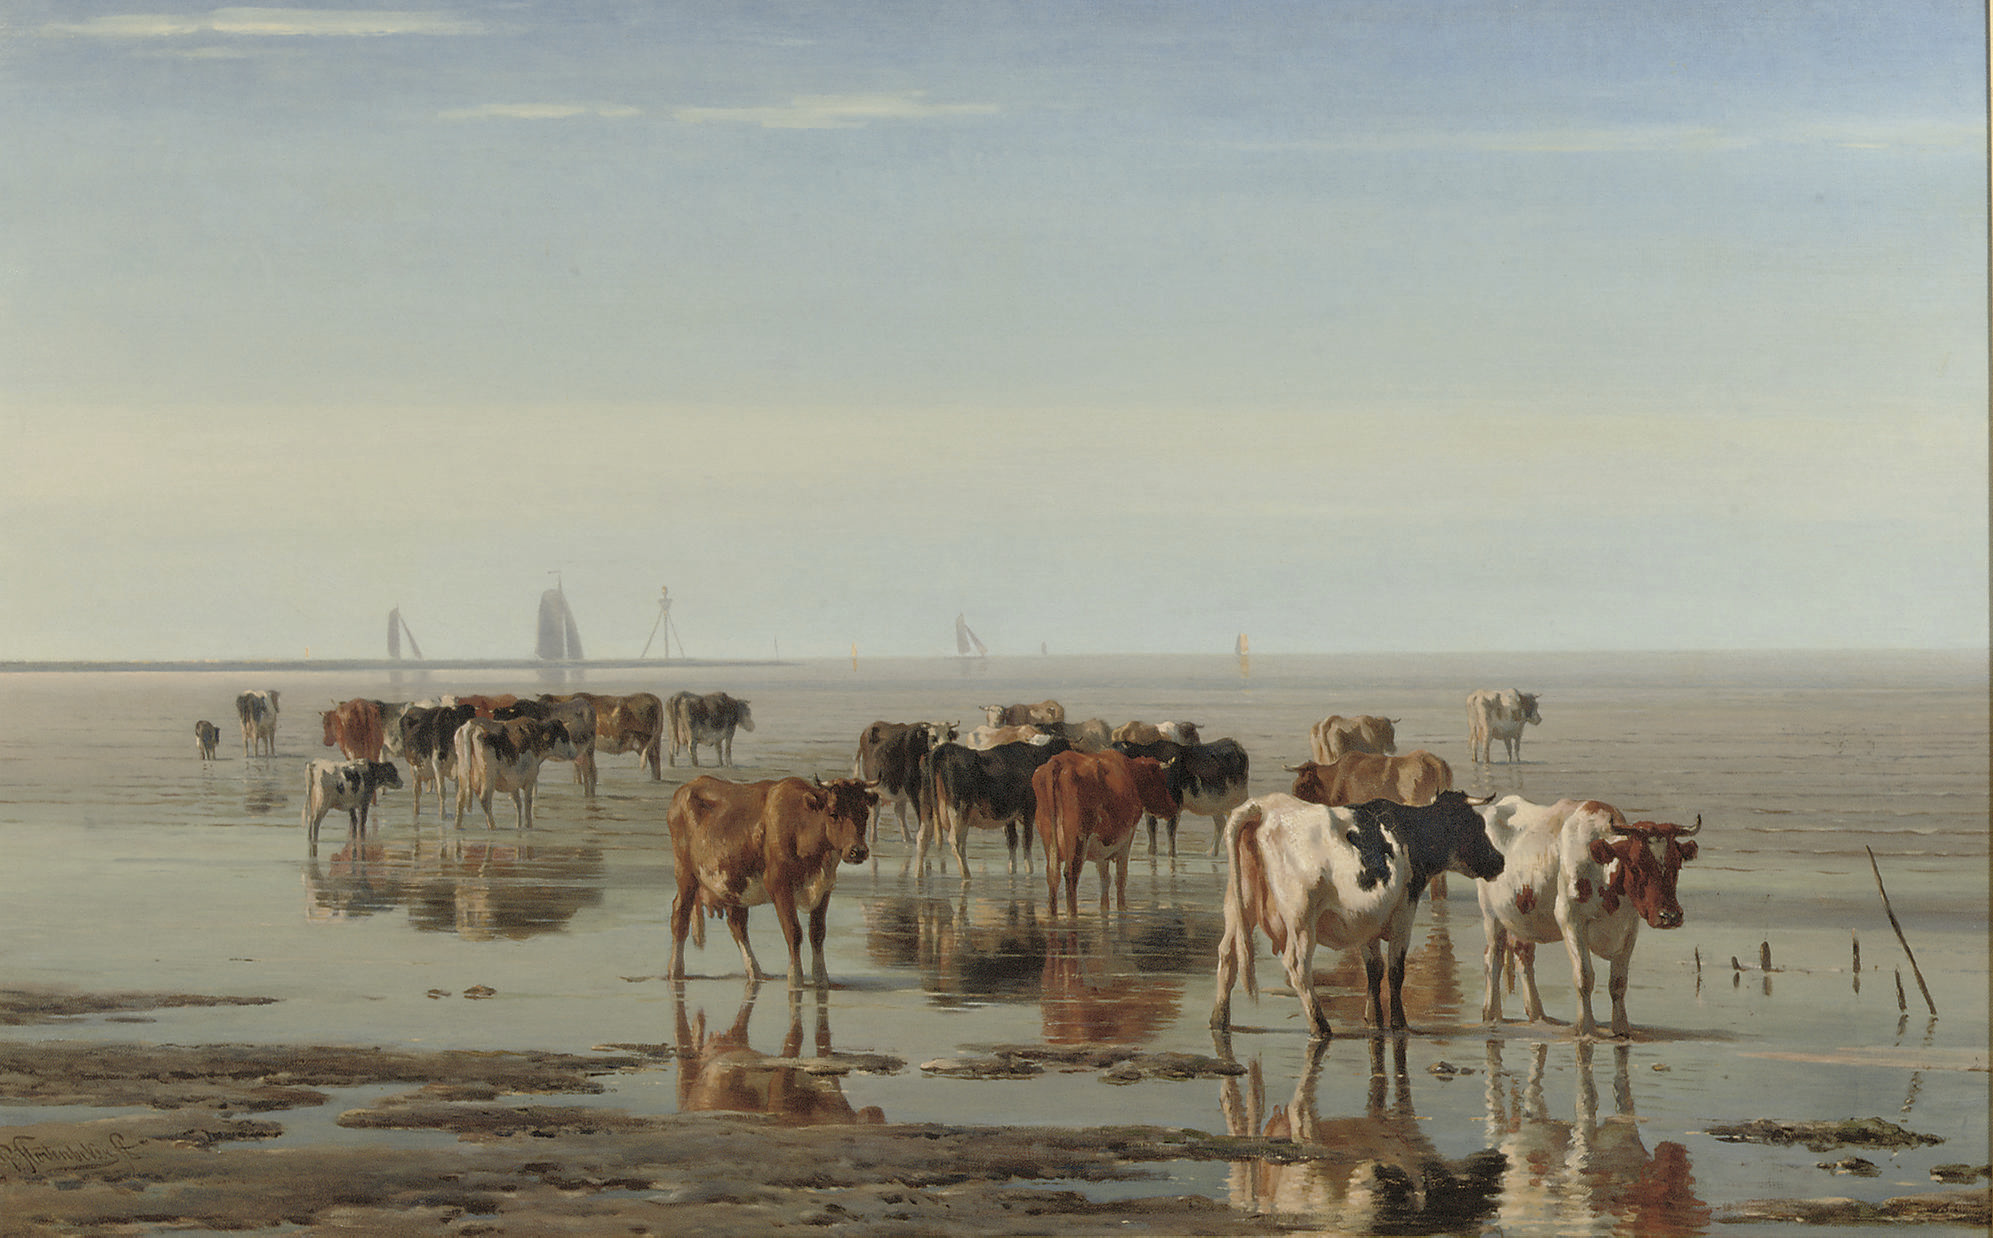 Cattle on the beach at low tide